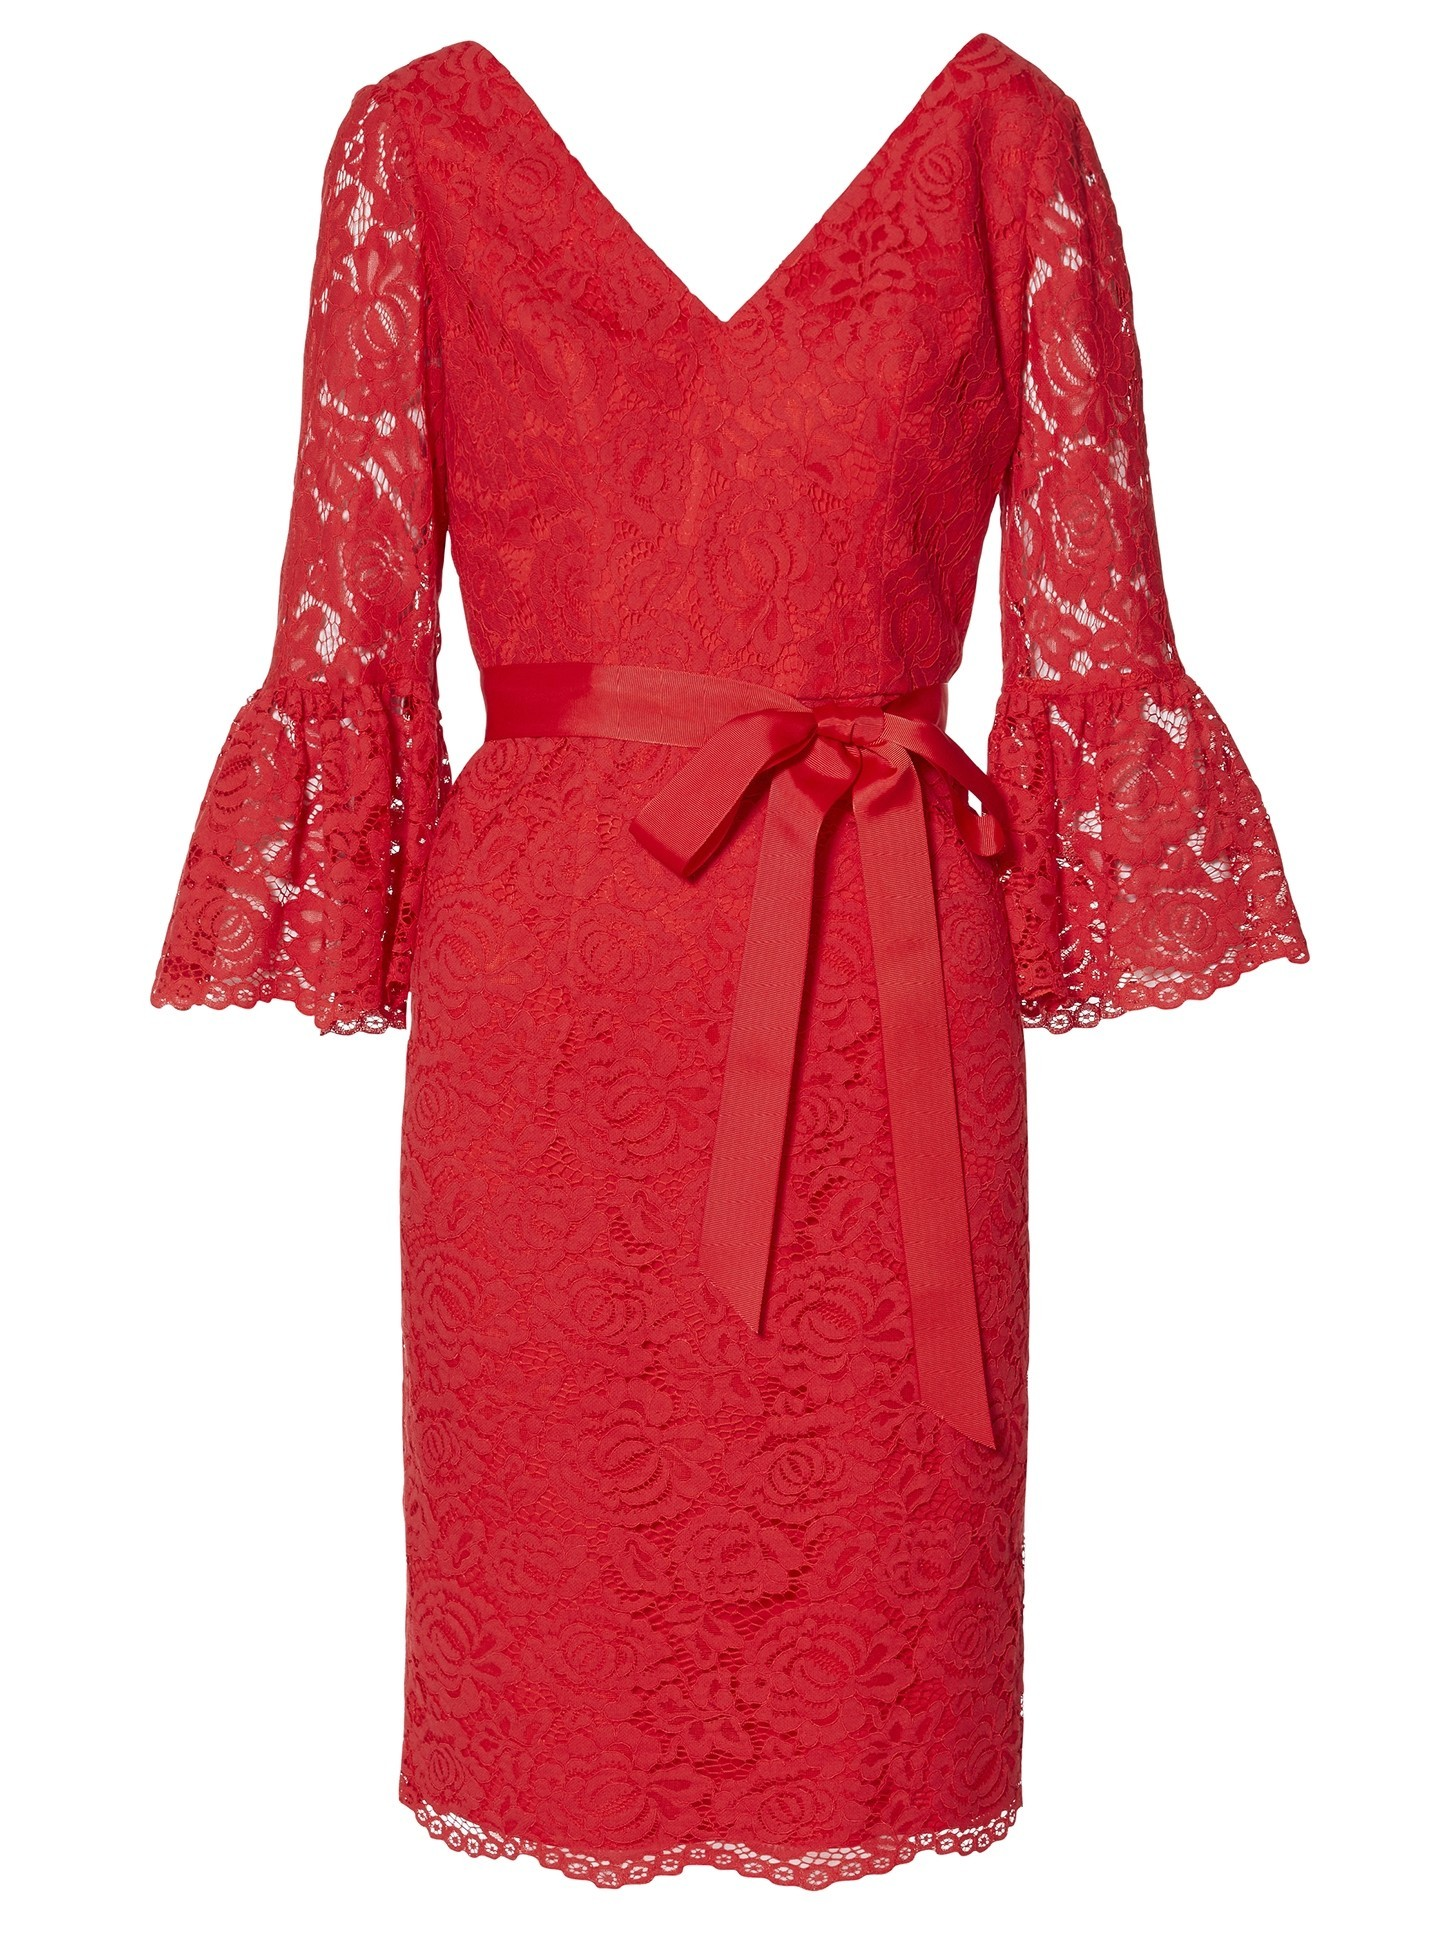 Lace Dress Red Detail